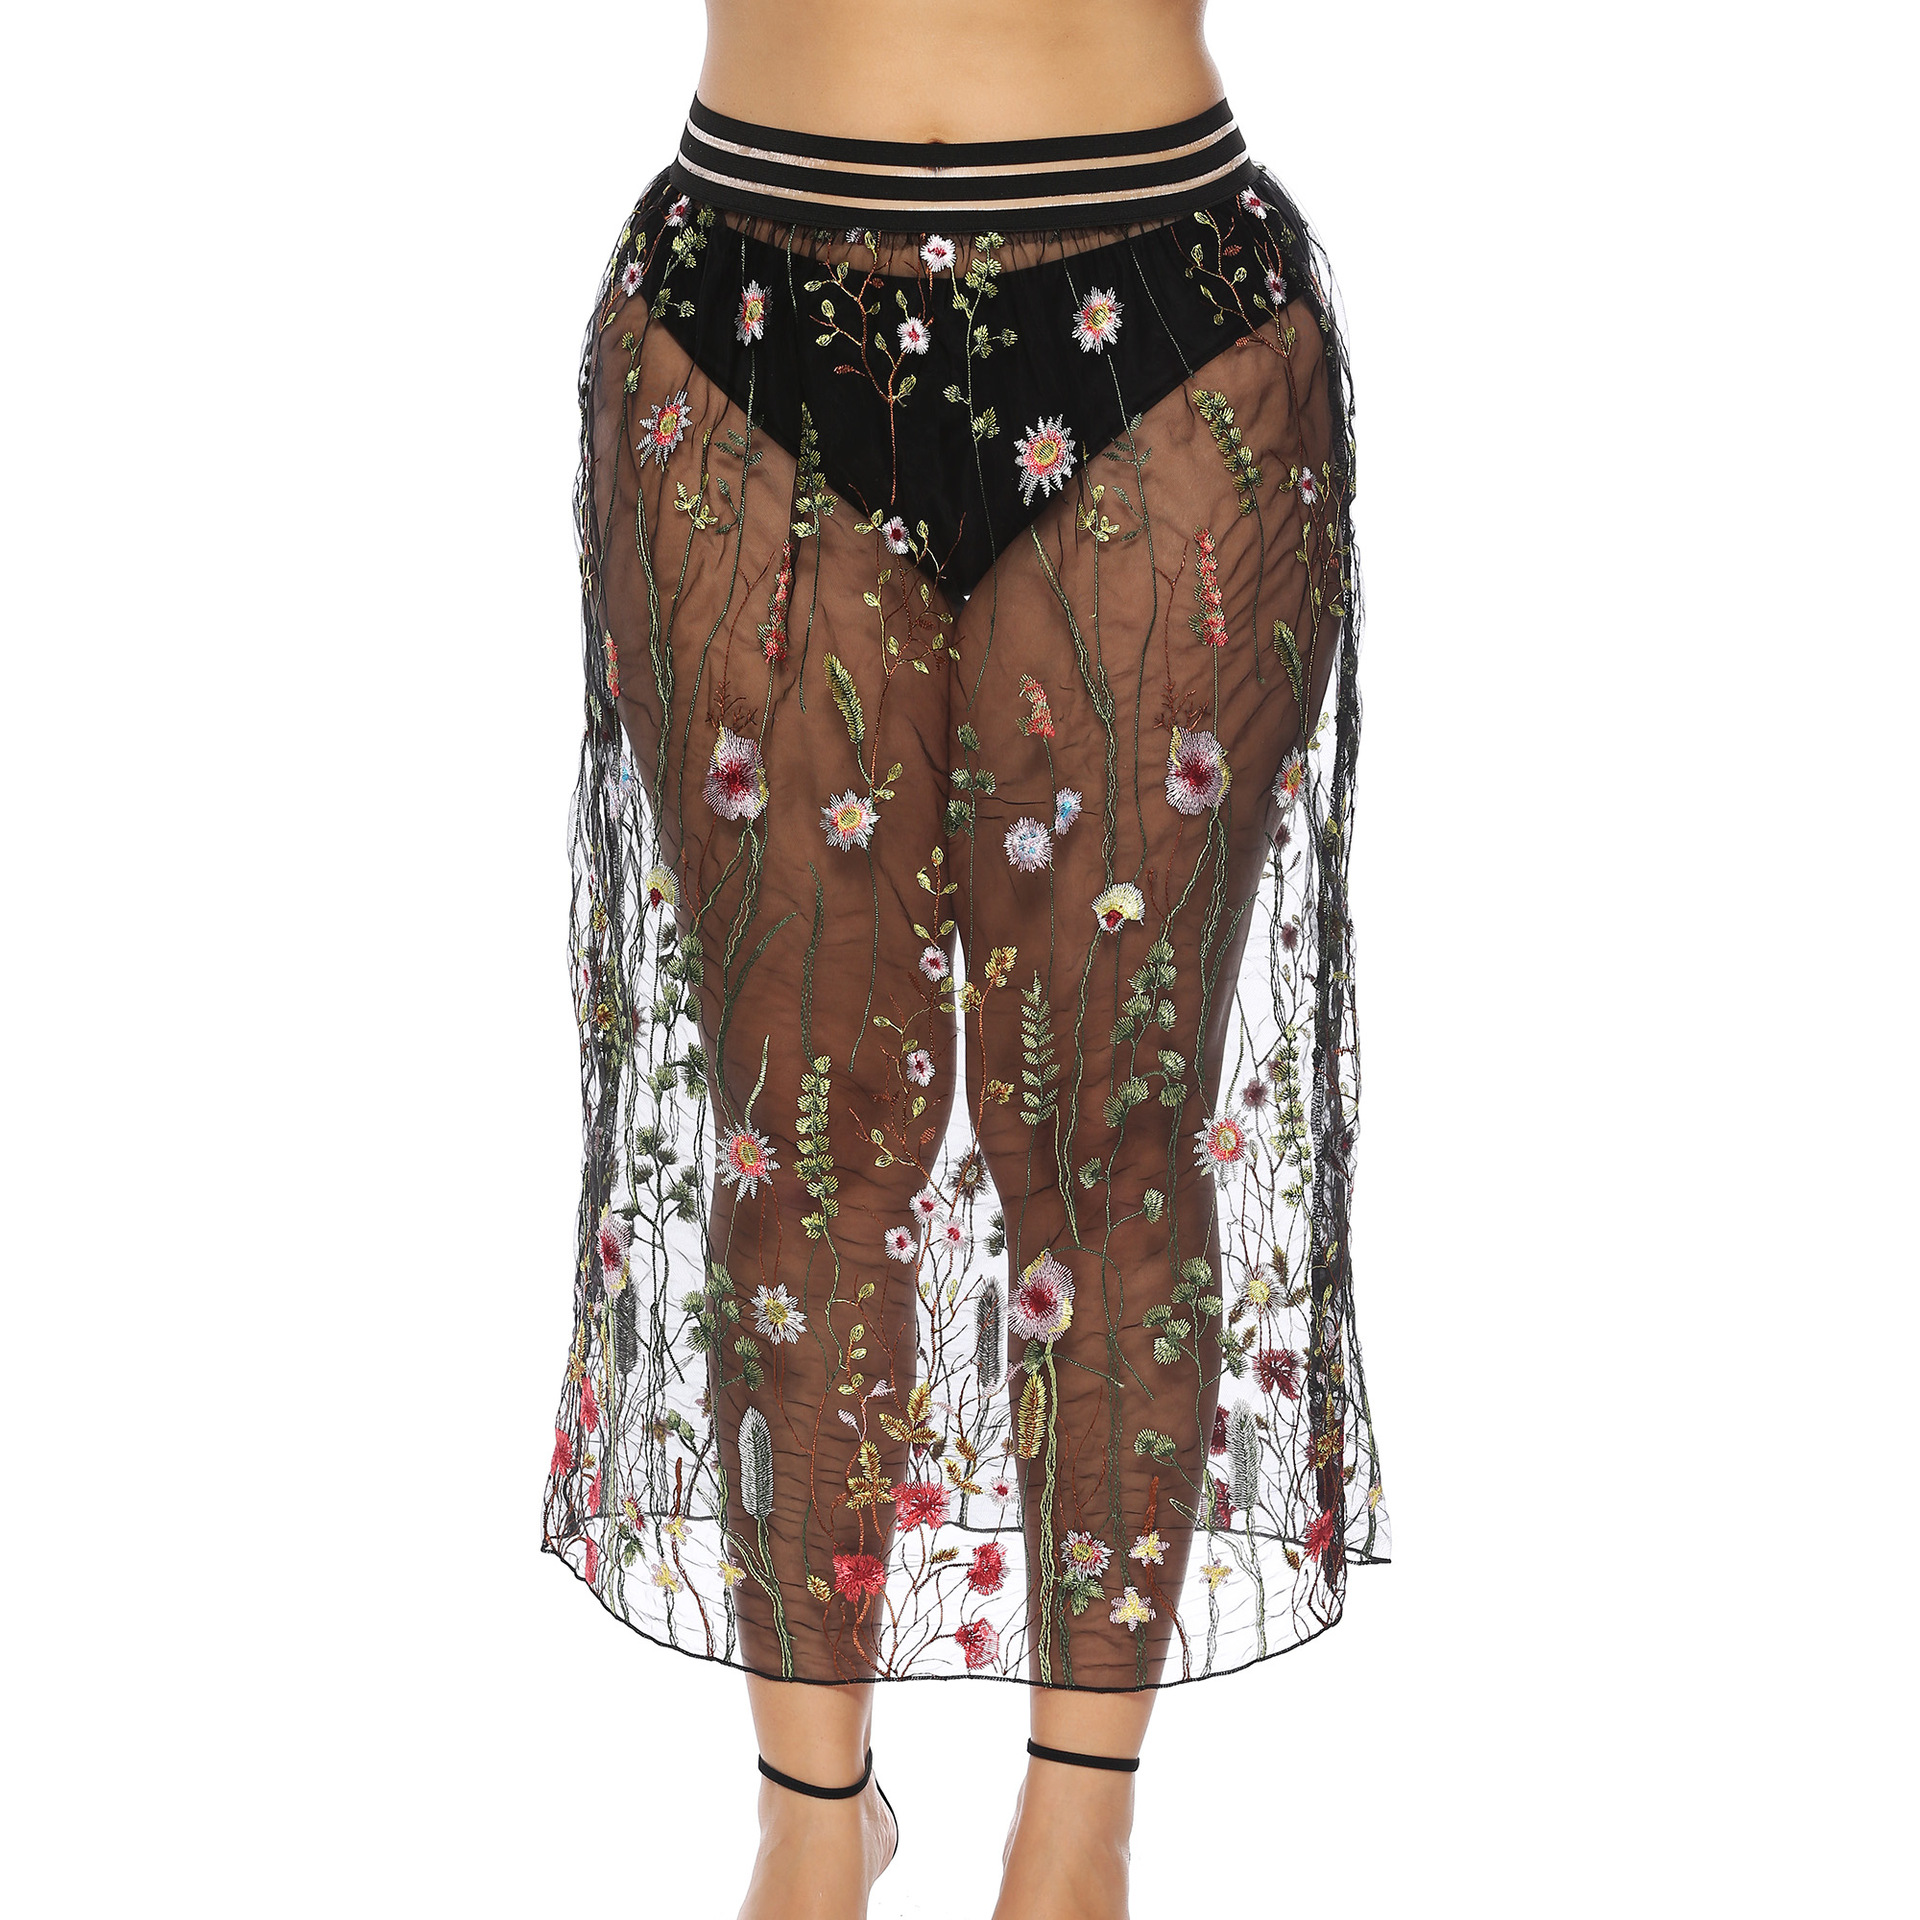 Large Size Dress Europe And America Sexy Transparent Embroidery Flowers Lace Skirt 1952